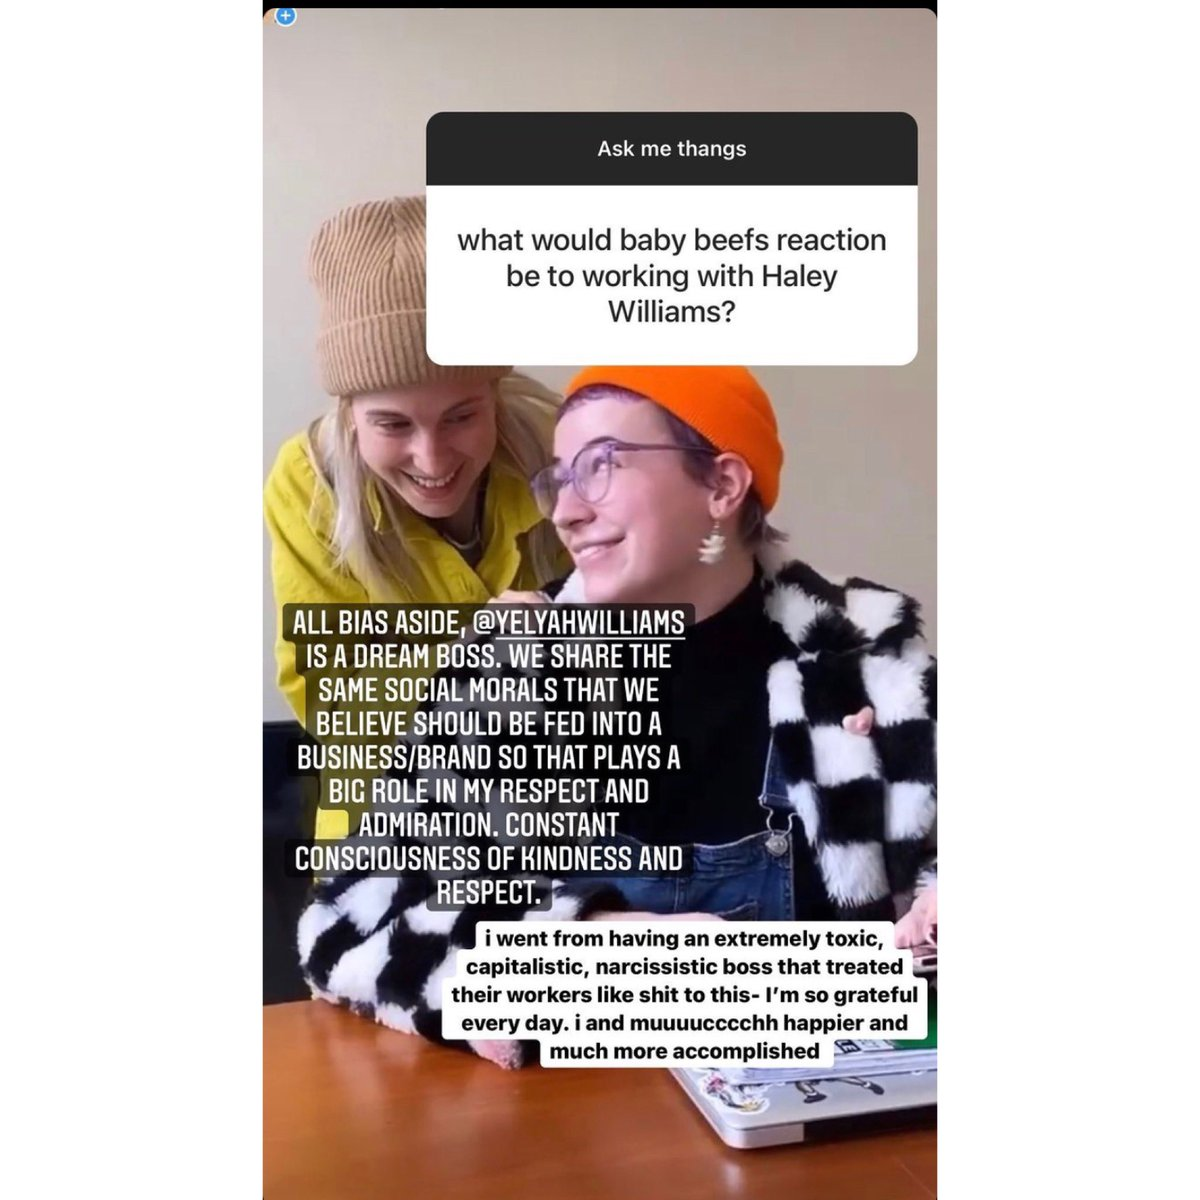 NEW PHOTO of #HayleyWilliams and the sweetest comment on her being the best boss possible ❤️ 📸 sweet.beef/IG